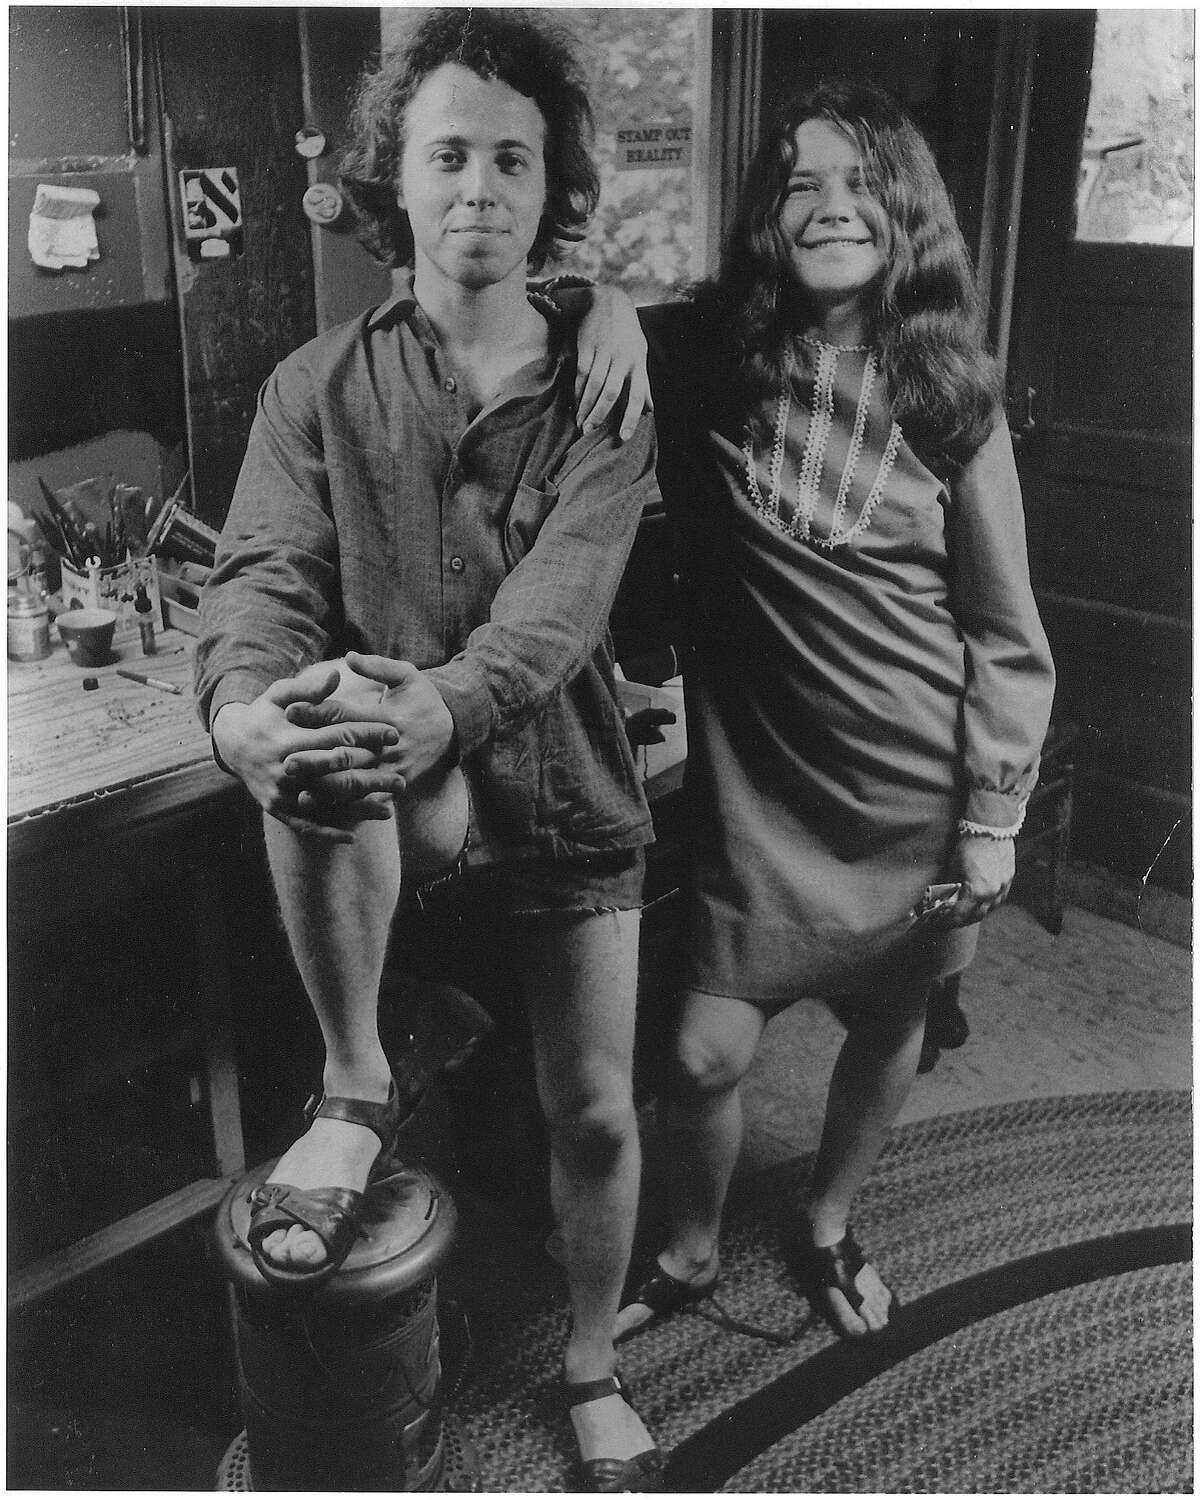 Dave Getz, drummer with Big Brother and the Holding Co., with Janis Joplin, Summer, 1966. Credit: Bob Seidemann